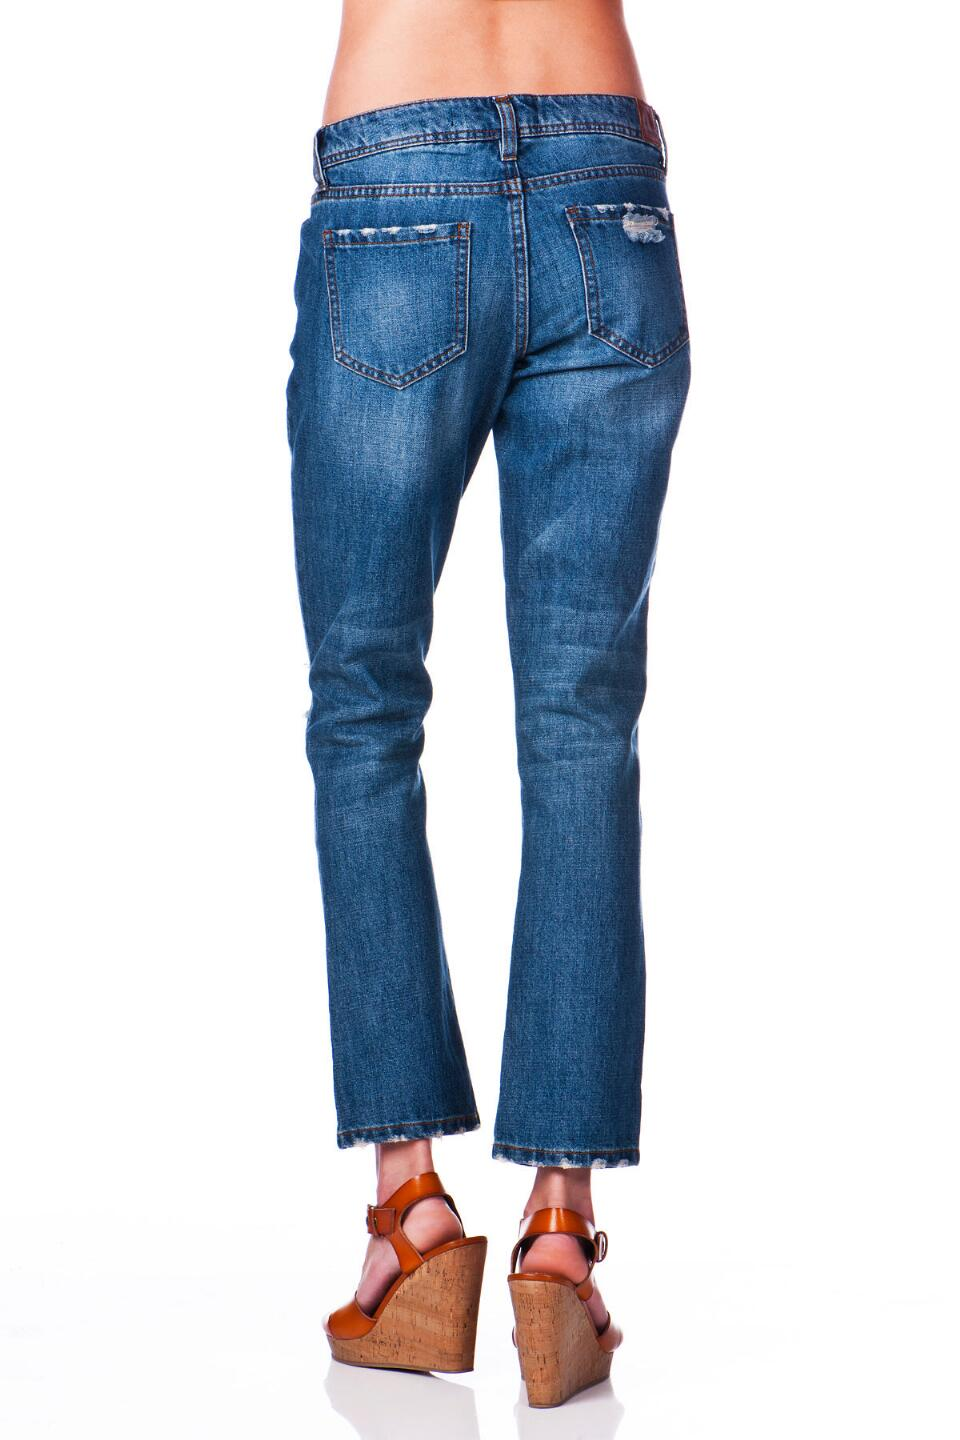 Harper Boyfriend Jean in All-American Wash-  blue-clback